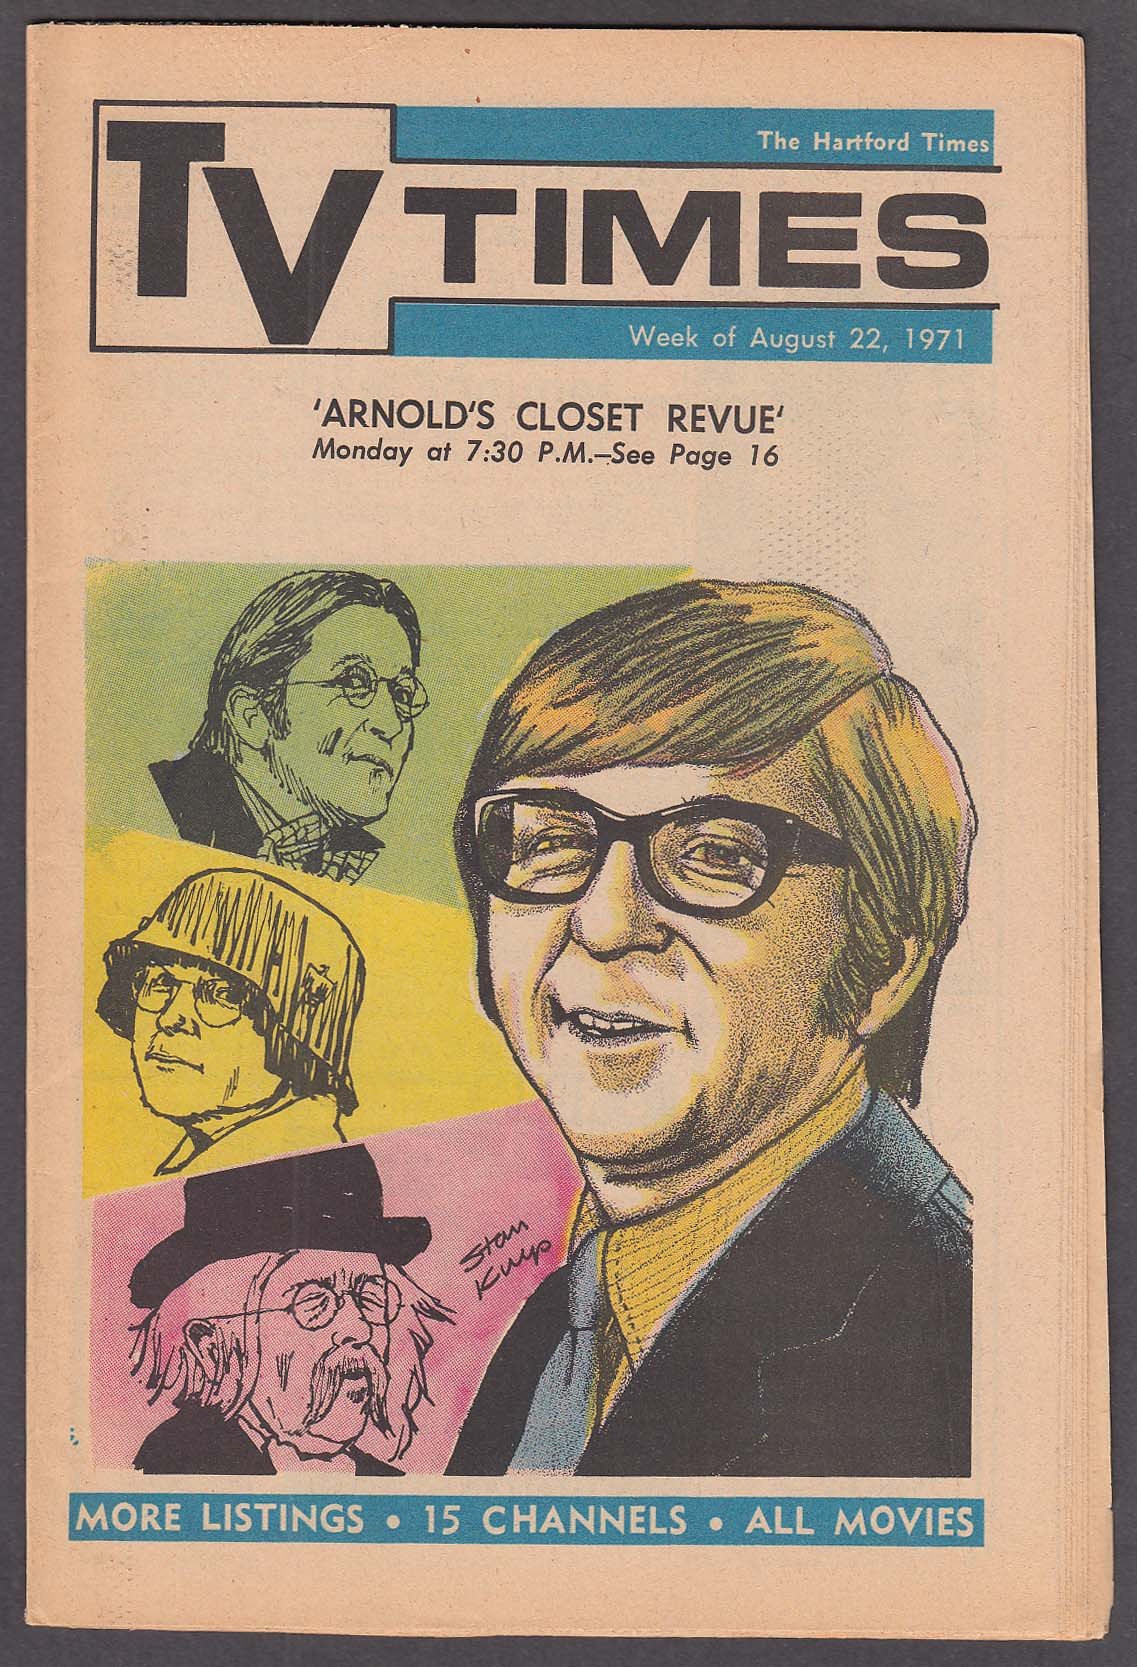 Image for TV TIMES Arte Johnson in Arnold's Closet Revue Hartford Times 8/22 1971